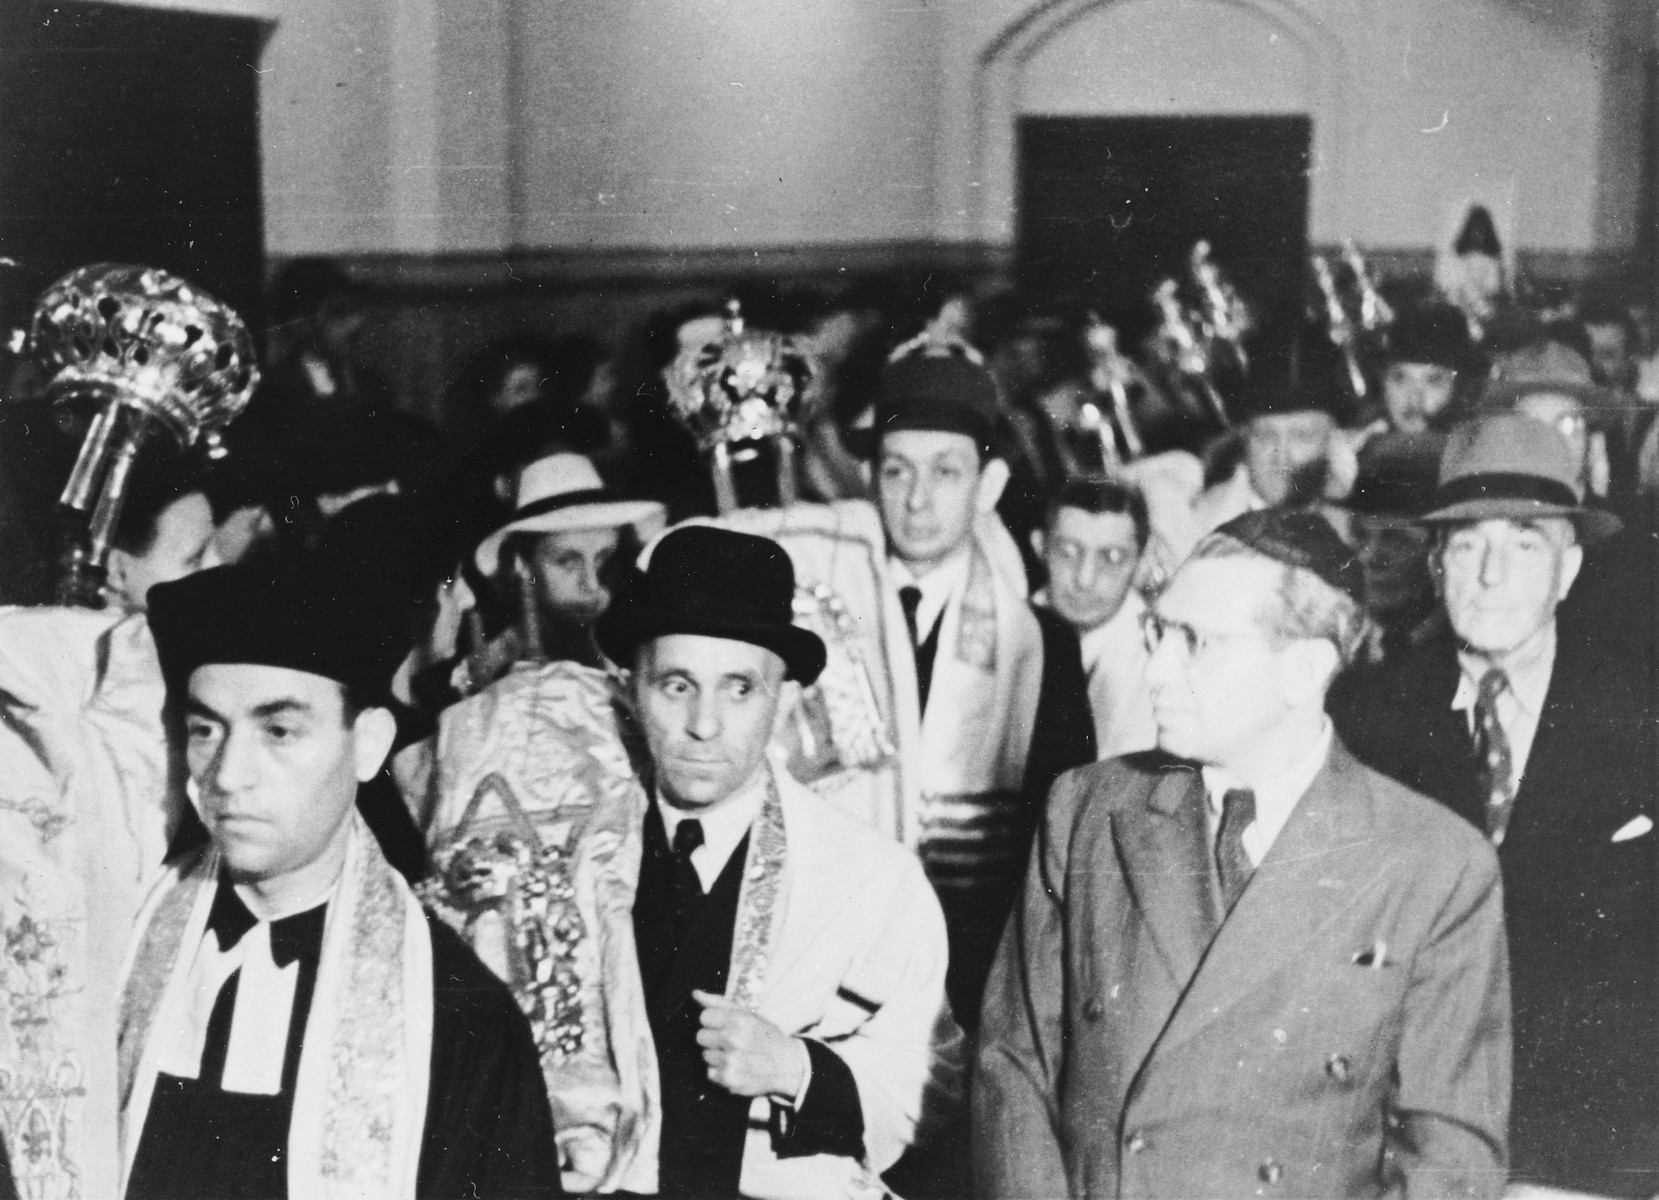 A procession of men carrying Torah scrolls into the  opening services of the Pestalozzistrasse synagogue in Berlin - Charlottenburg, held on Erew Rosh Hashana.     Among those pictured are the donor's father Hans Fabian (center), Kantor Estrongo Nachama (far left) and  Fritz Sachs (far right).  Kantor Nachama was a survivor of Auschwitz.  Fritz Sachs was a member of the synagogue board (Gabbai).